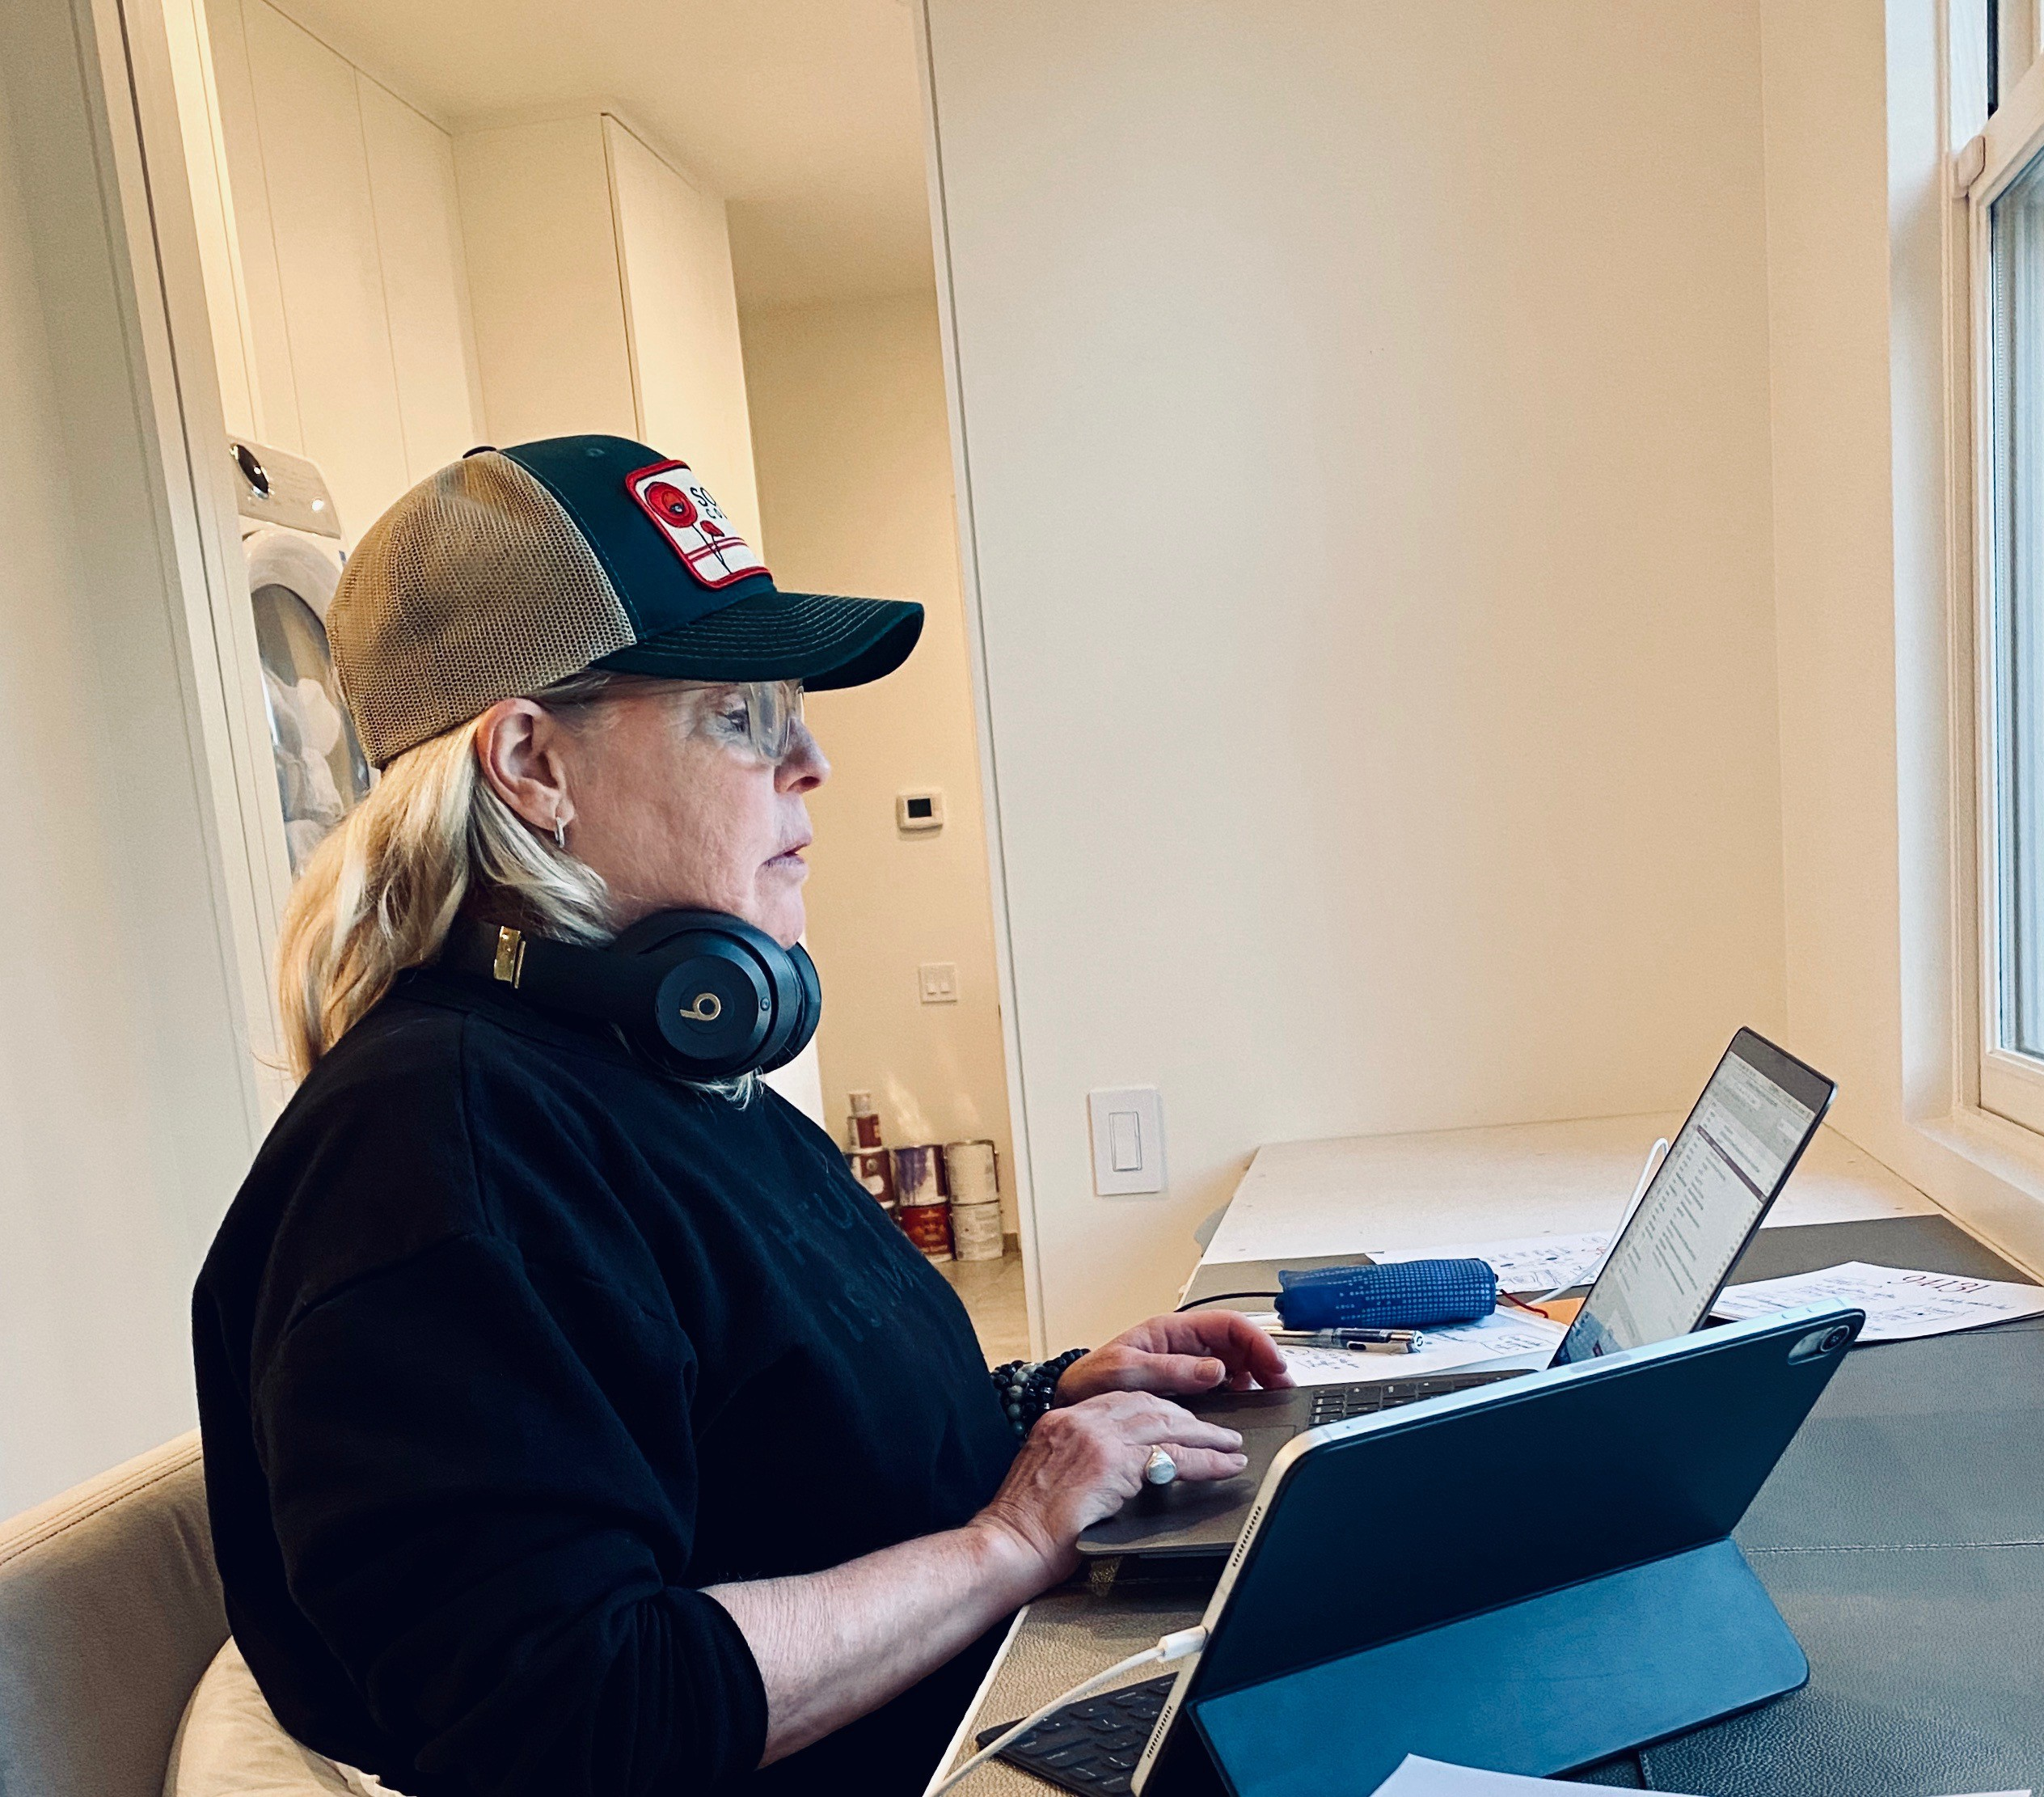 Amy Errett, co-founder and CEO of Madison Reed subscription hair color works from her laptop at home.